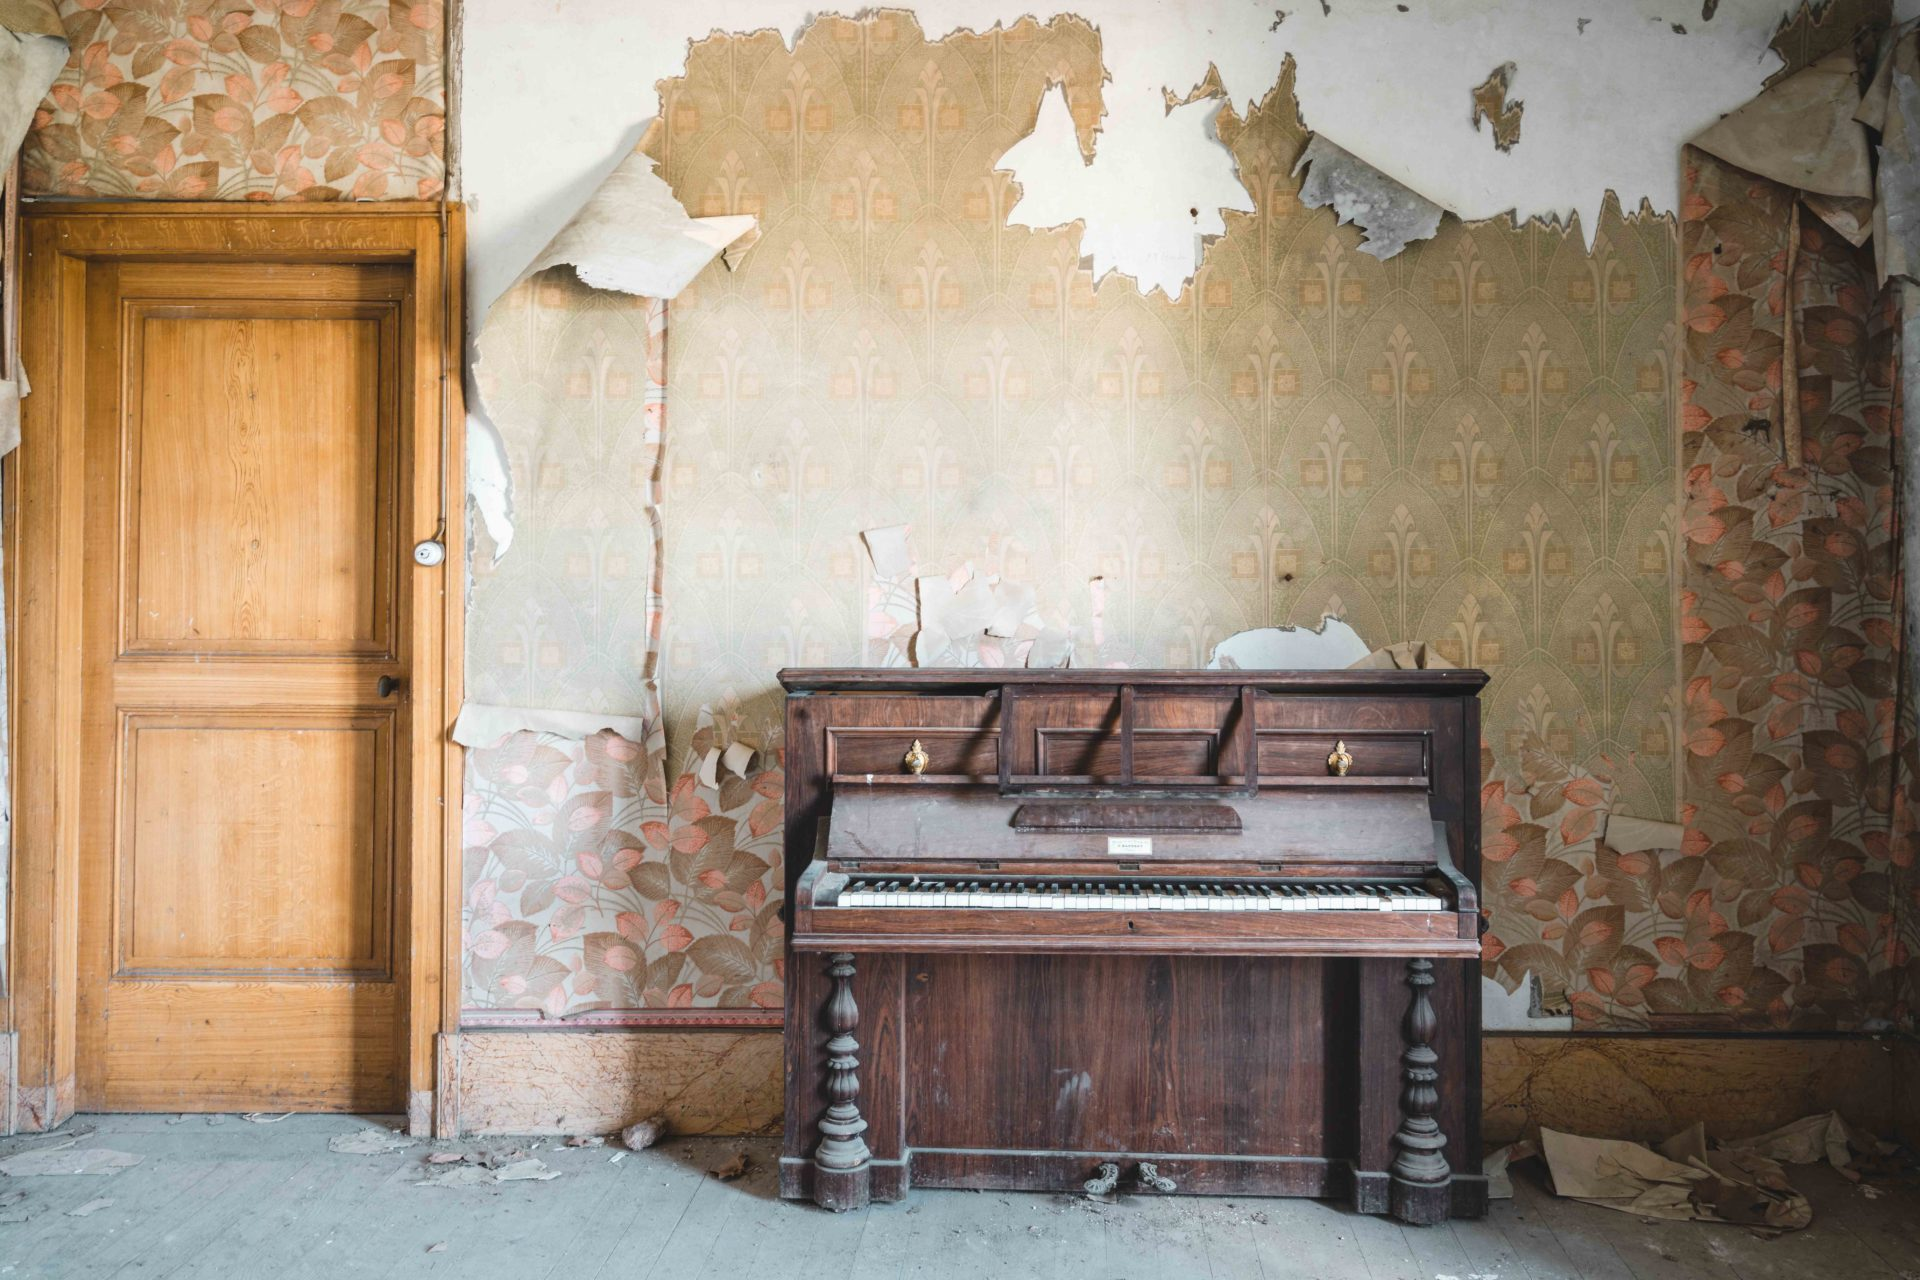 abandoned piano in France, Romain Thiery photographer, requiem pour pianos series, abandoned pianos, photographies pianos